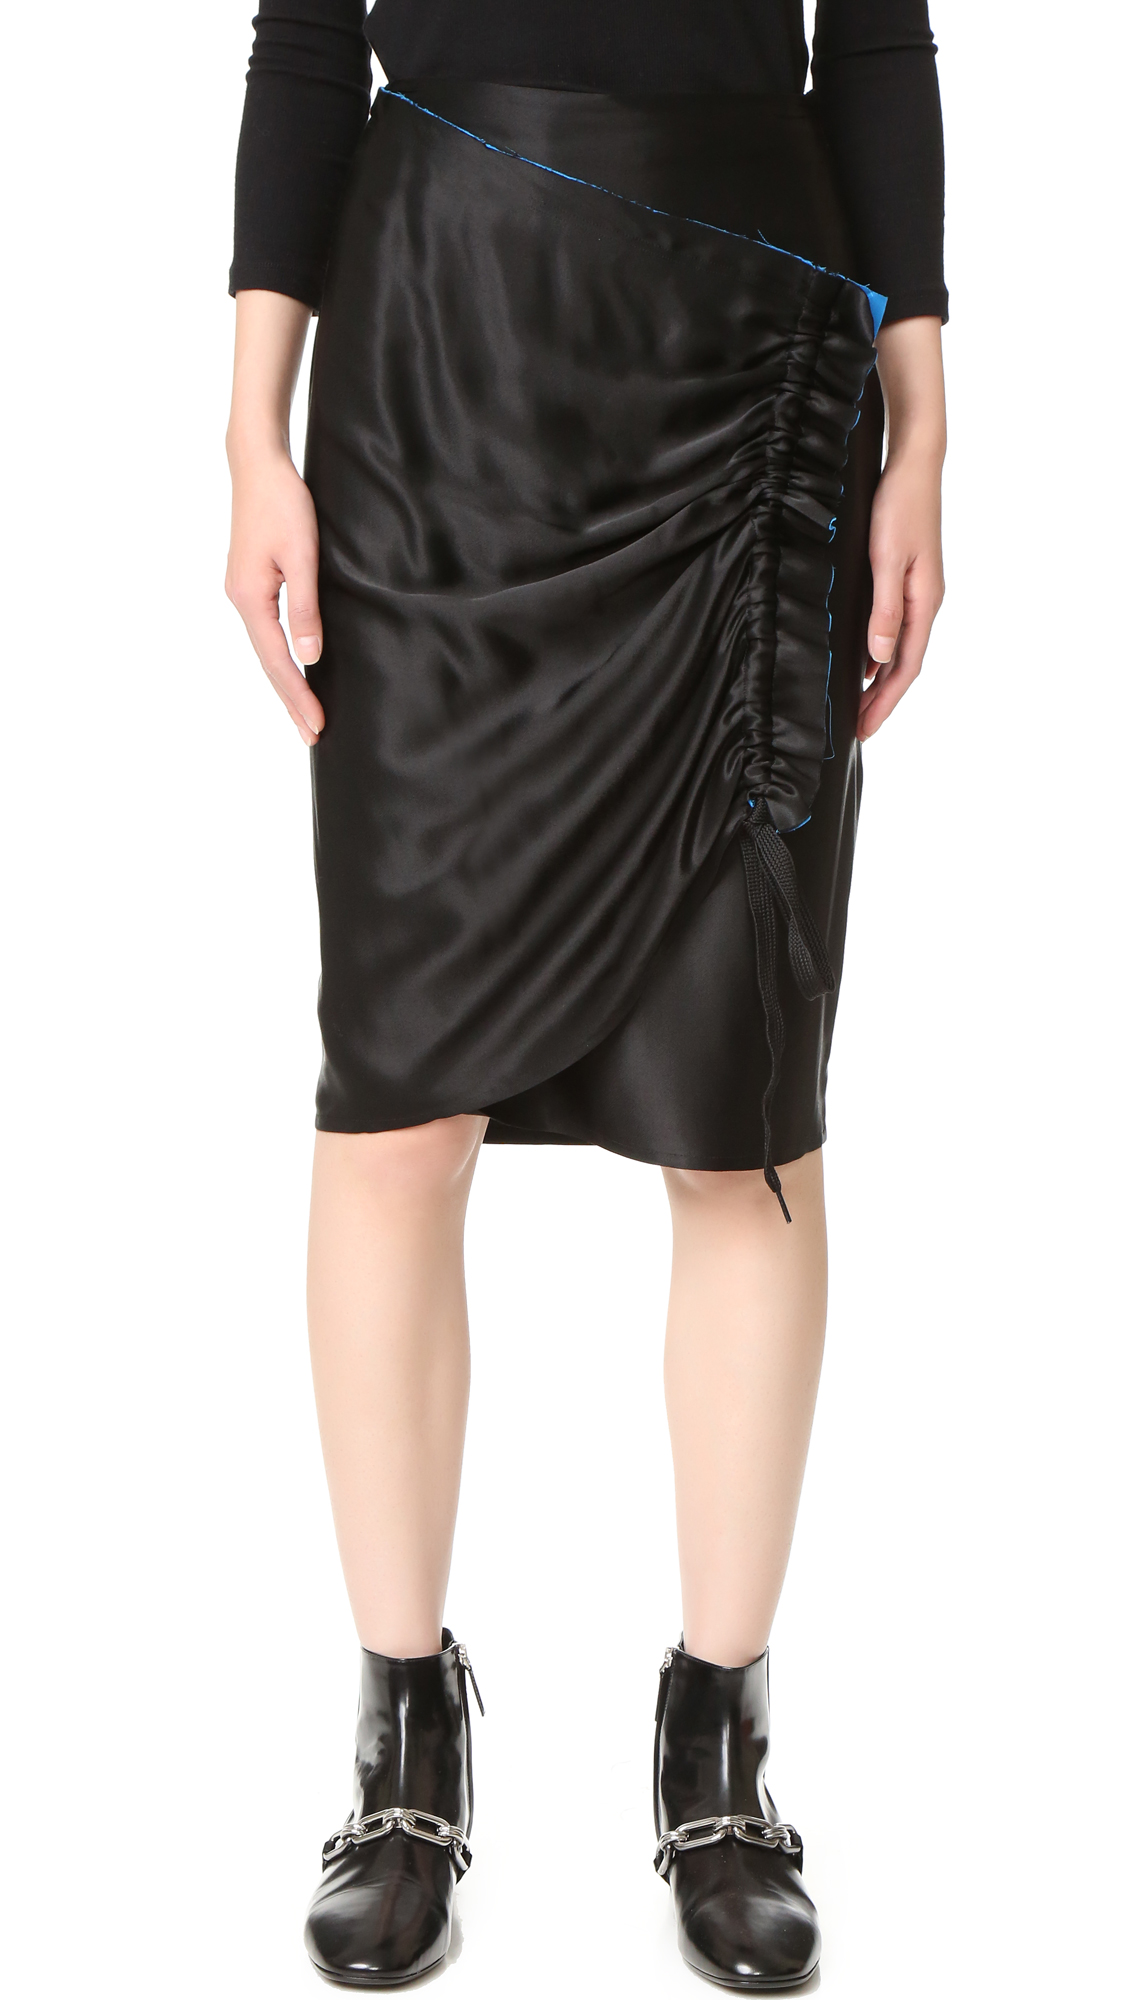 Dkny Wrap Skirt With Contrast Trim - Black at Shopbop